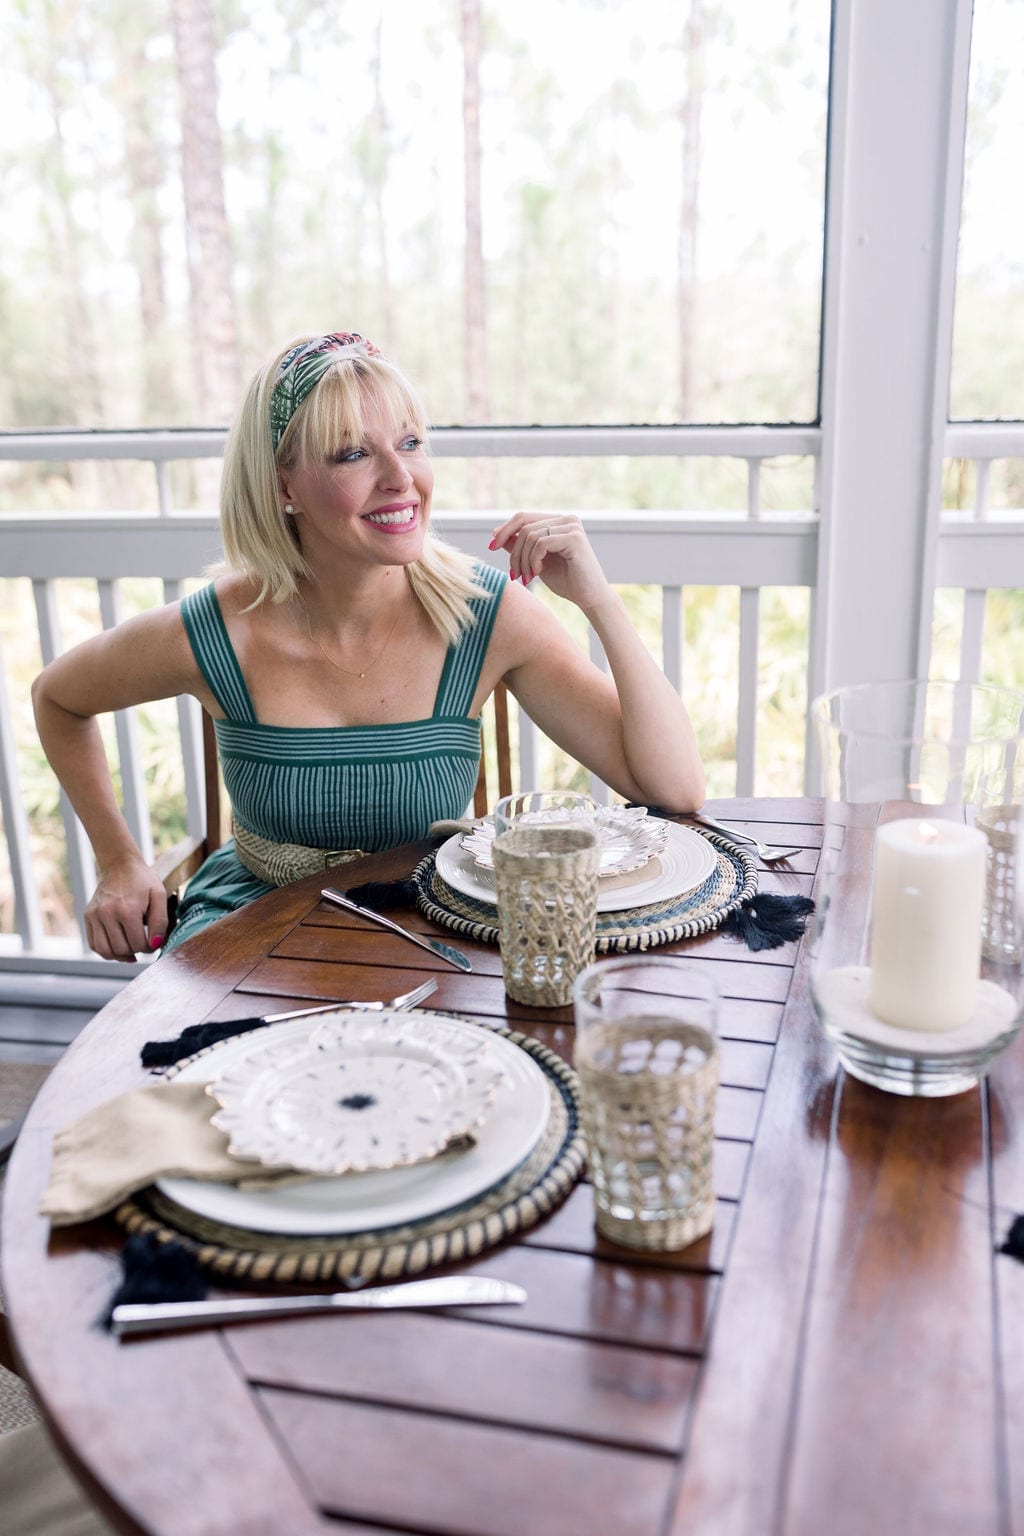 Table settings with round placemats for outdoor coastal glam table setting with accents of wicker, black and gold.